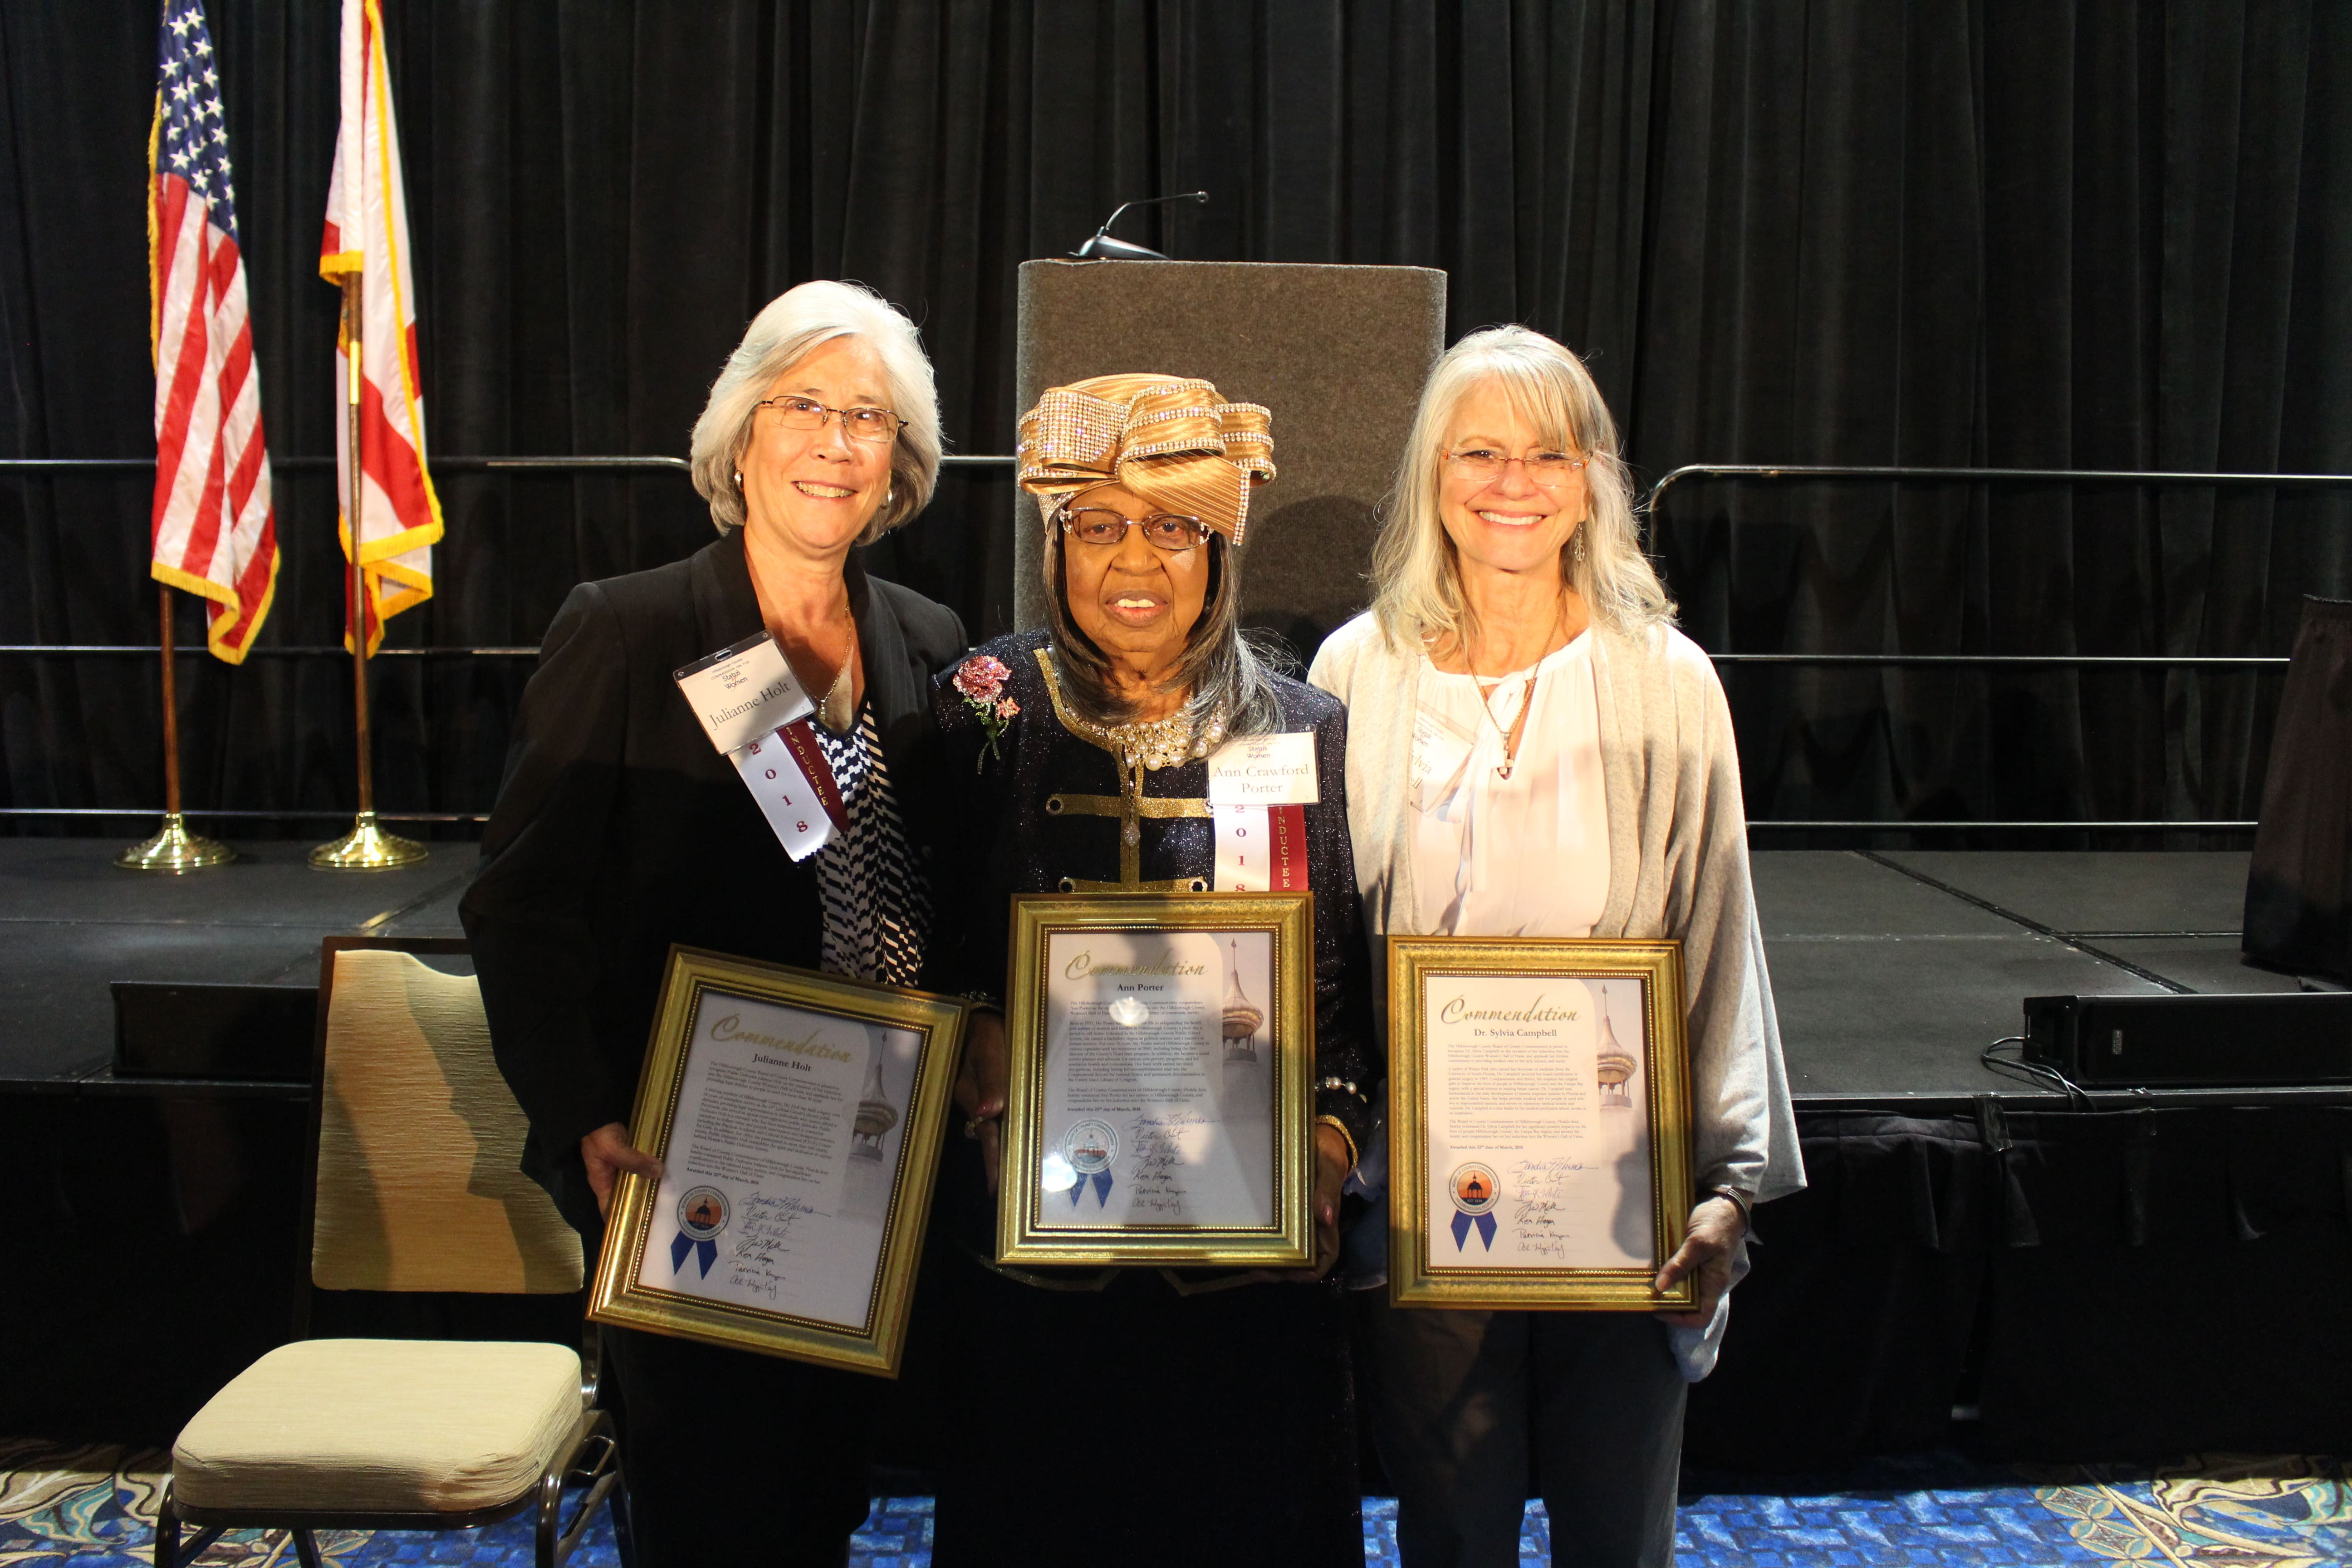 The 2018 inductees of the Women's Hall of Fame: Ms. Holt, Ms. Ann Porter, and Dr. Sylvia Campbell.